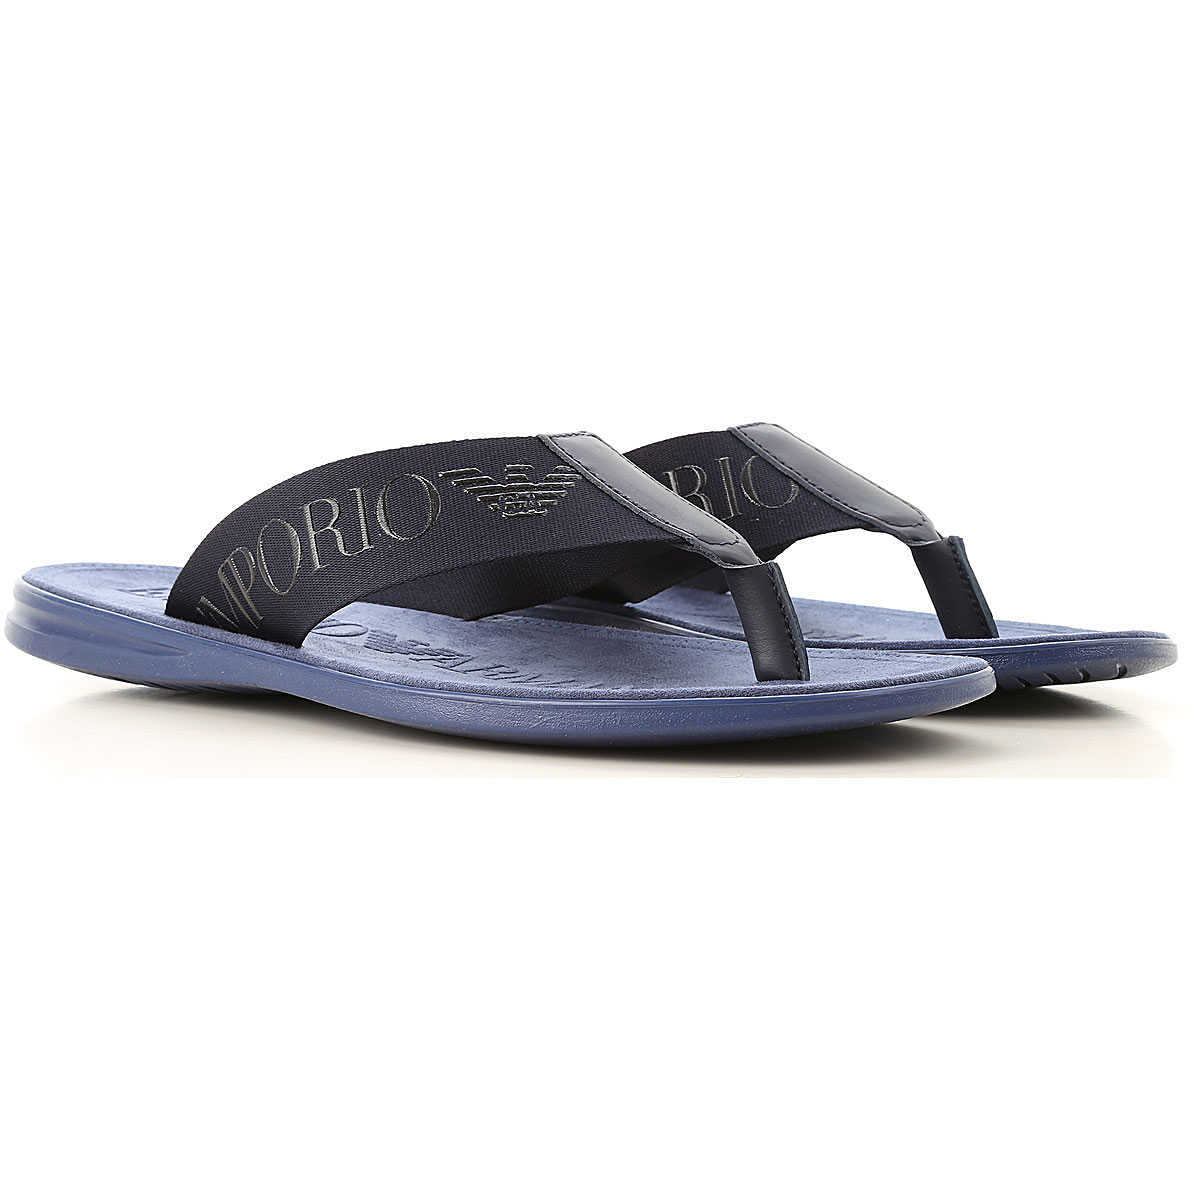 Emporio Armani Sandals for Men On Sale Night Blue UK - GOOFASH